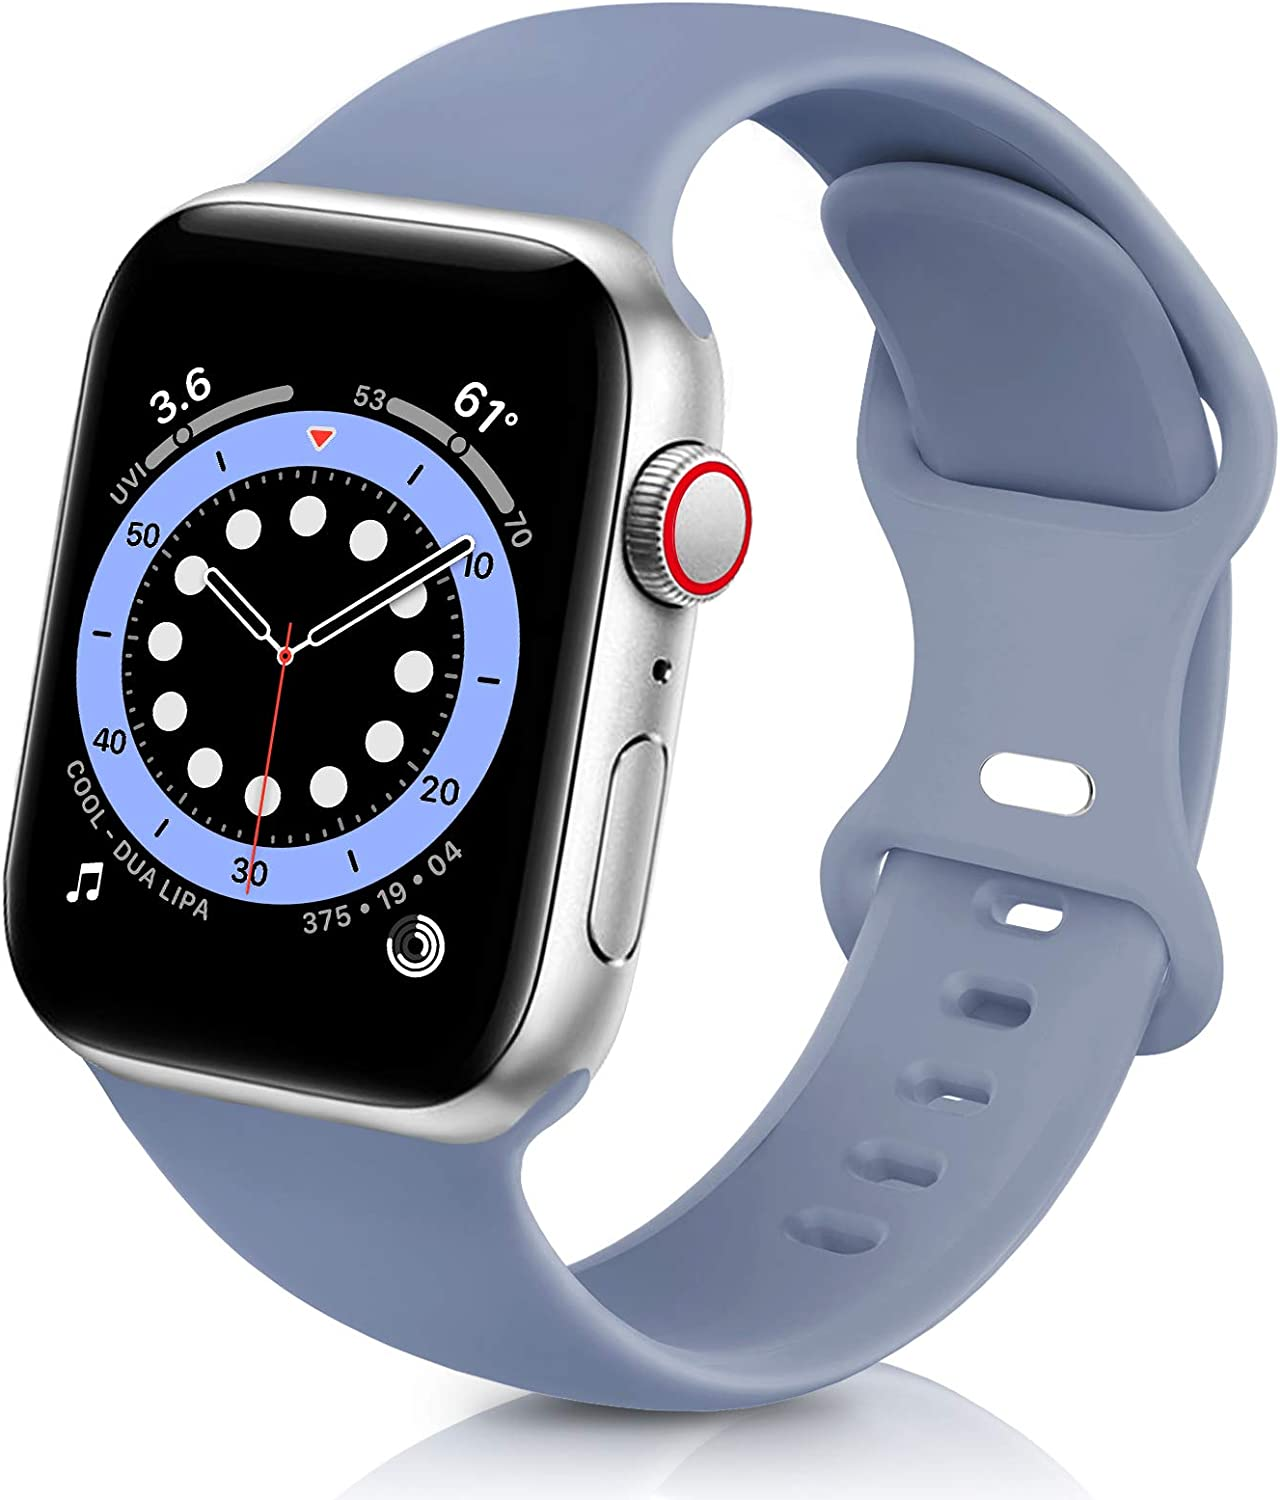 ZALAVER Bands Compatible with Apple Watch Band 38mm 40mm 42mm 44mm, Soft Silicone Sport Replacement Band Compatible with iWatch Series 6 5 4 3 2 1 Women Men Lavender Grey 38mm/40mm S/M